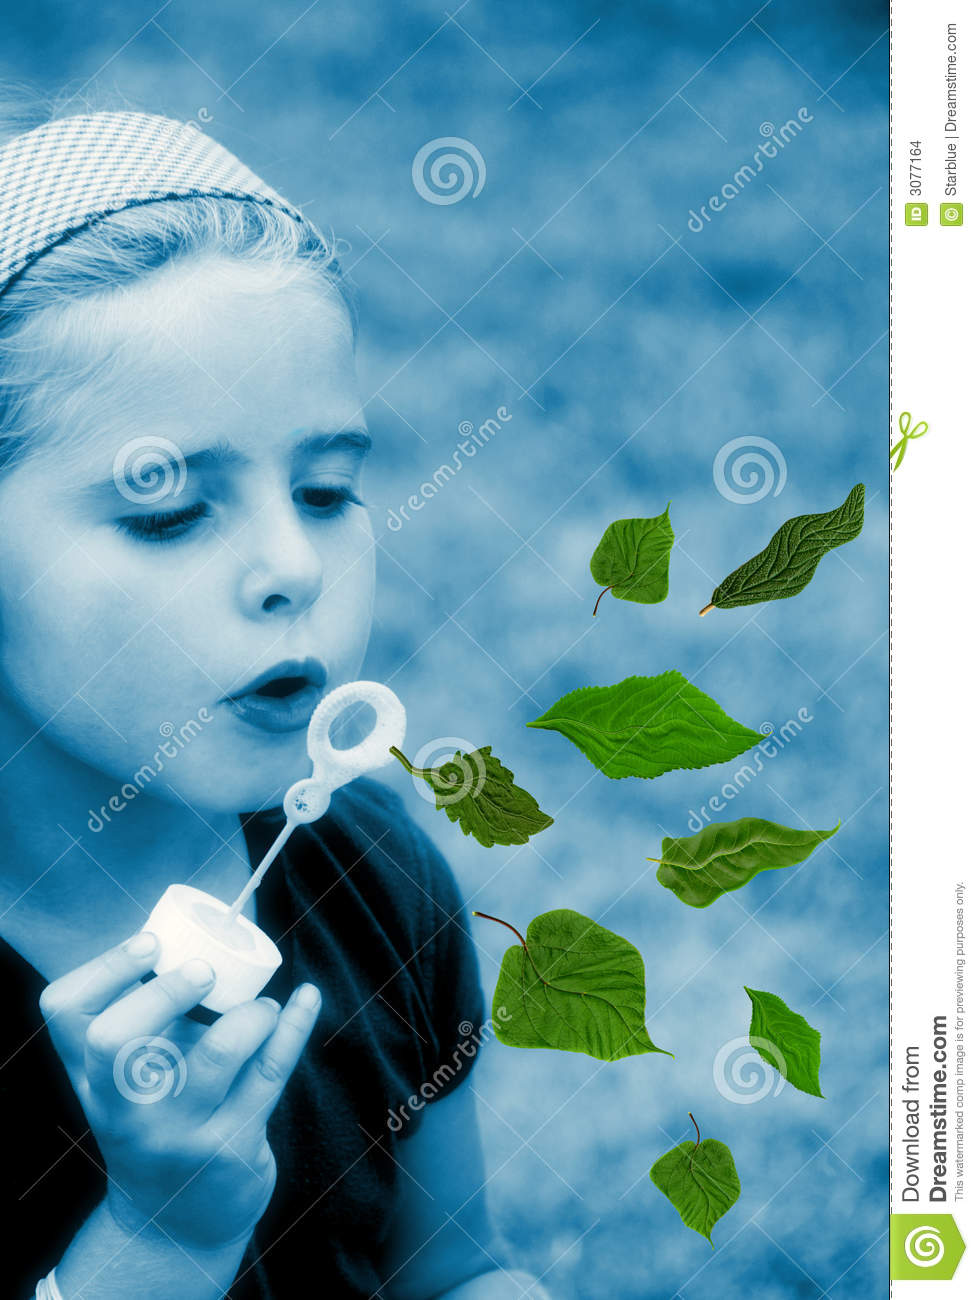 Children and ecology